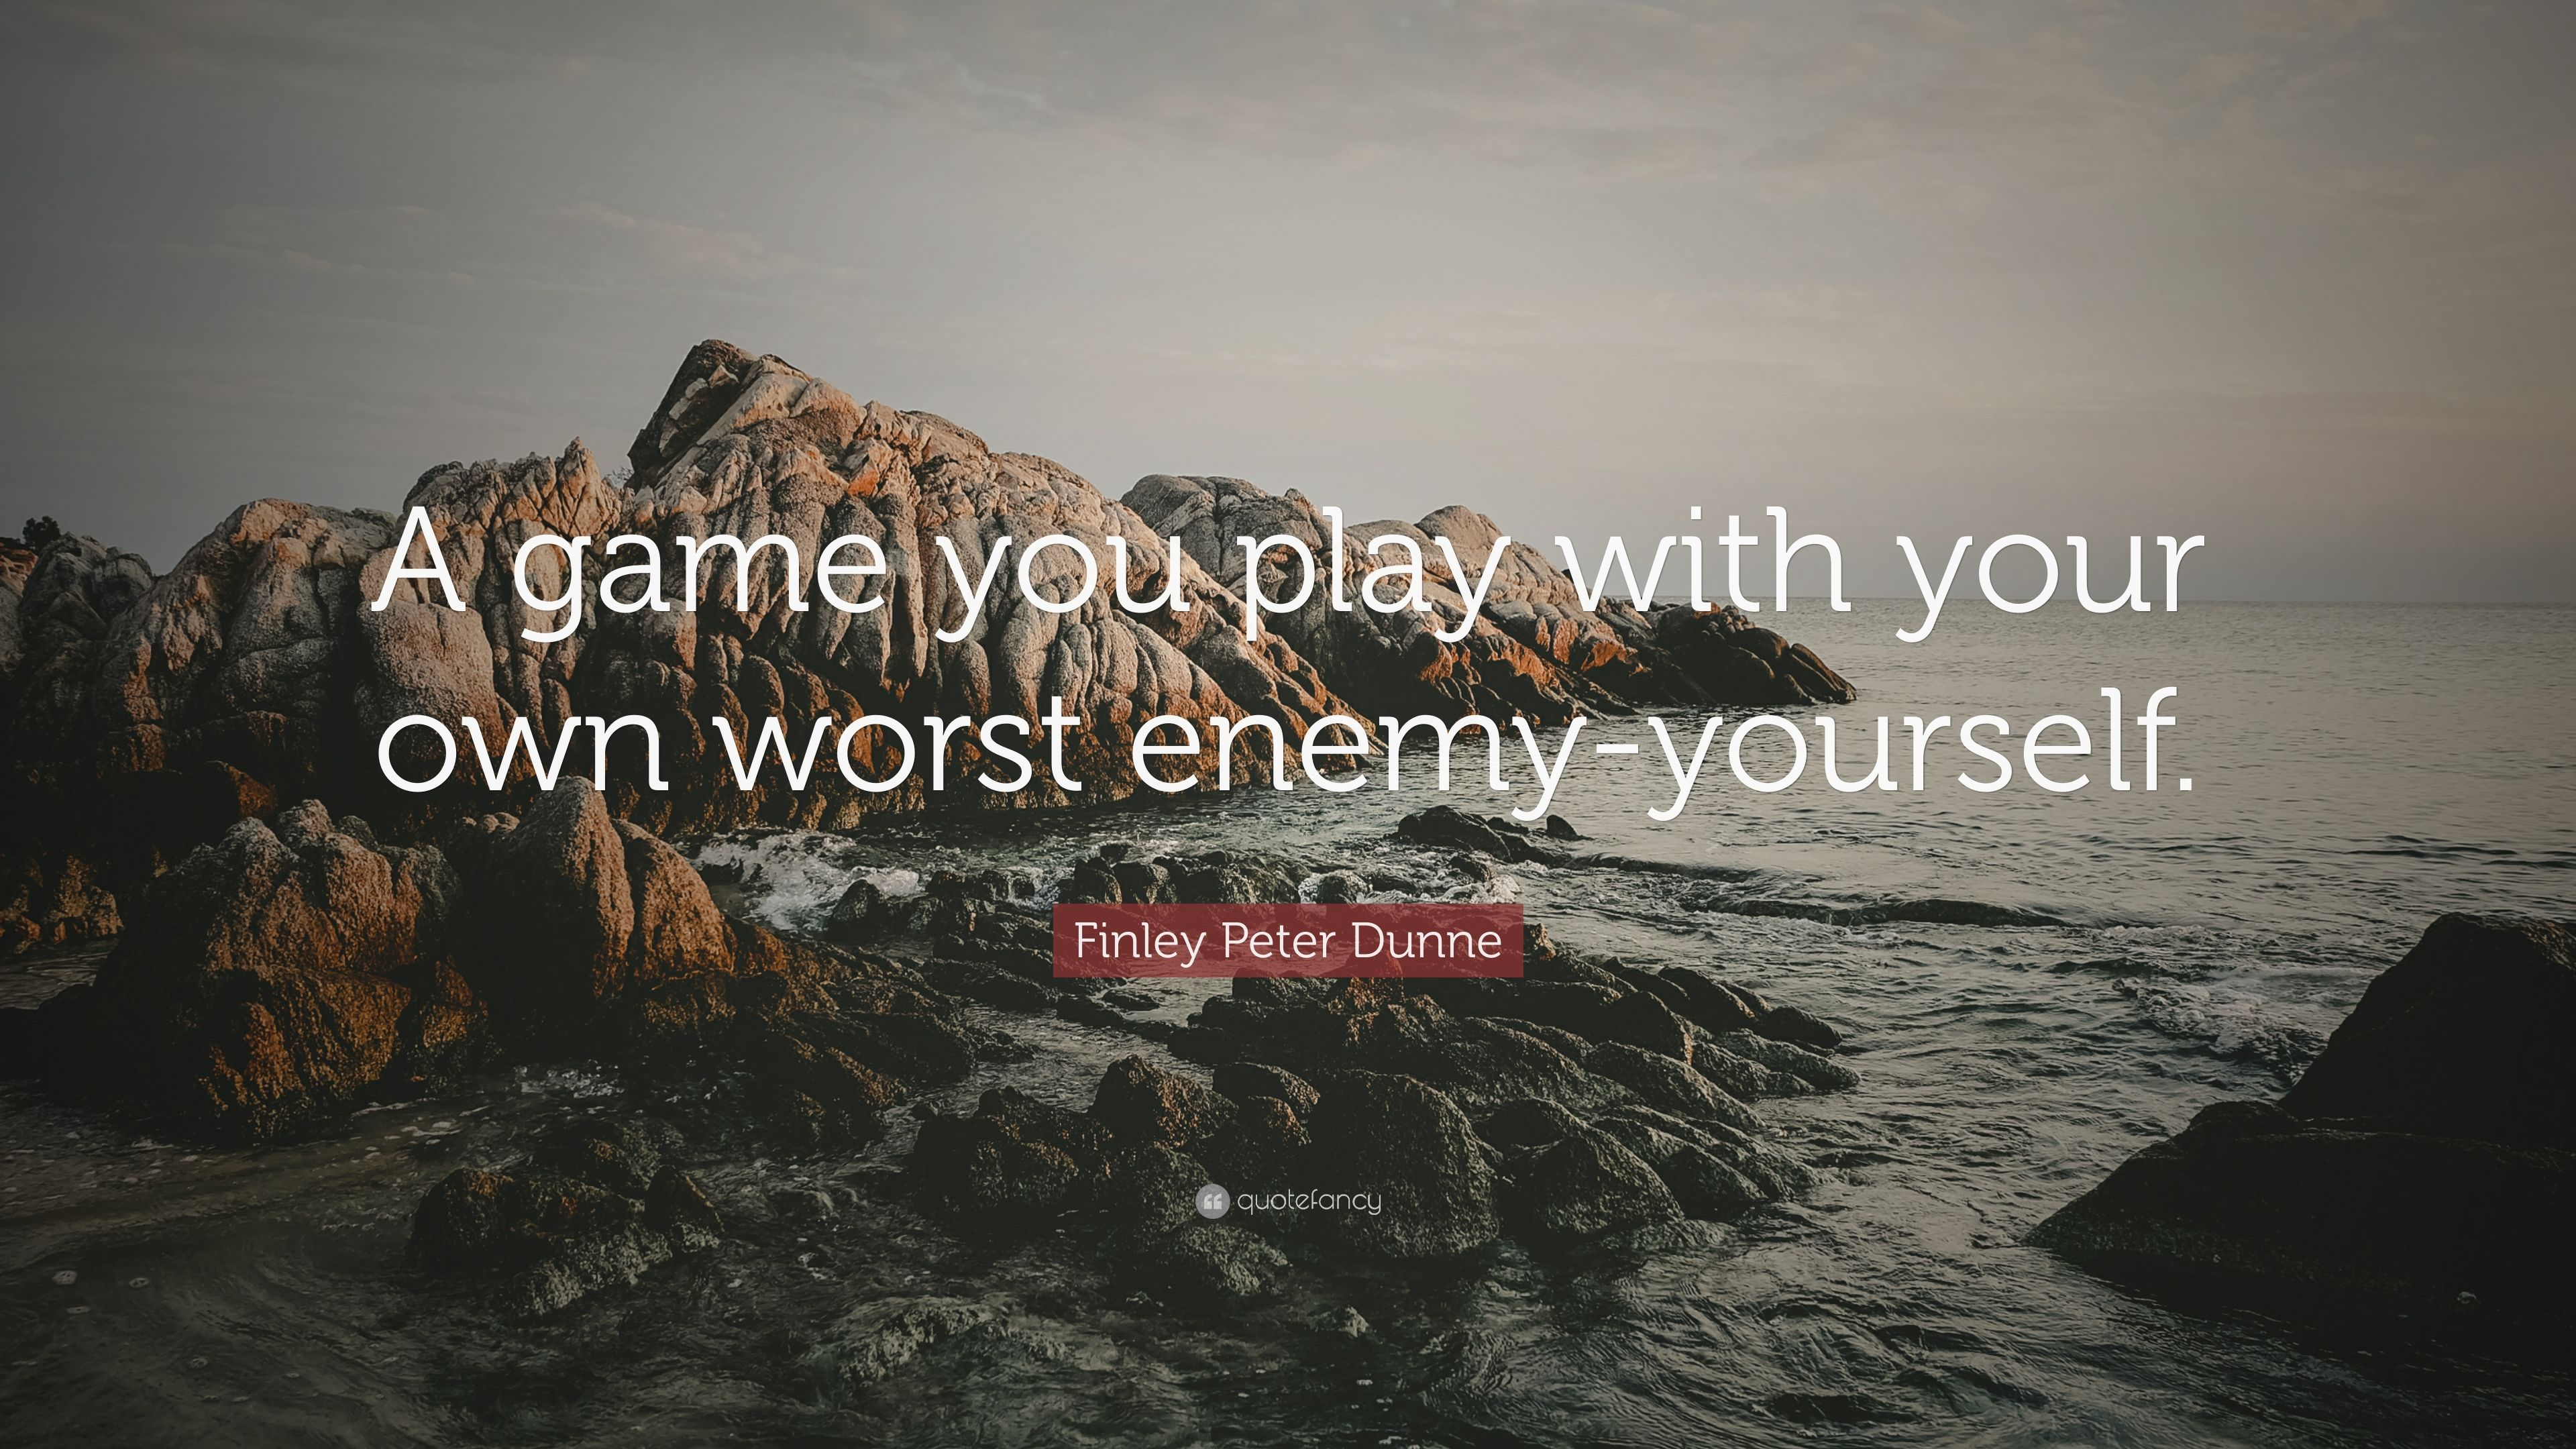 8 Reasons Why Your Worst Enemy Is Yourself